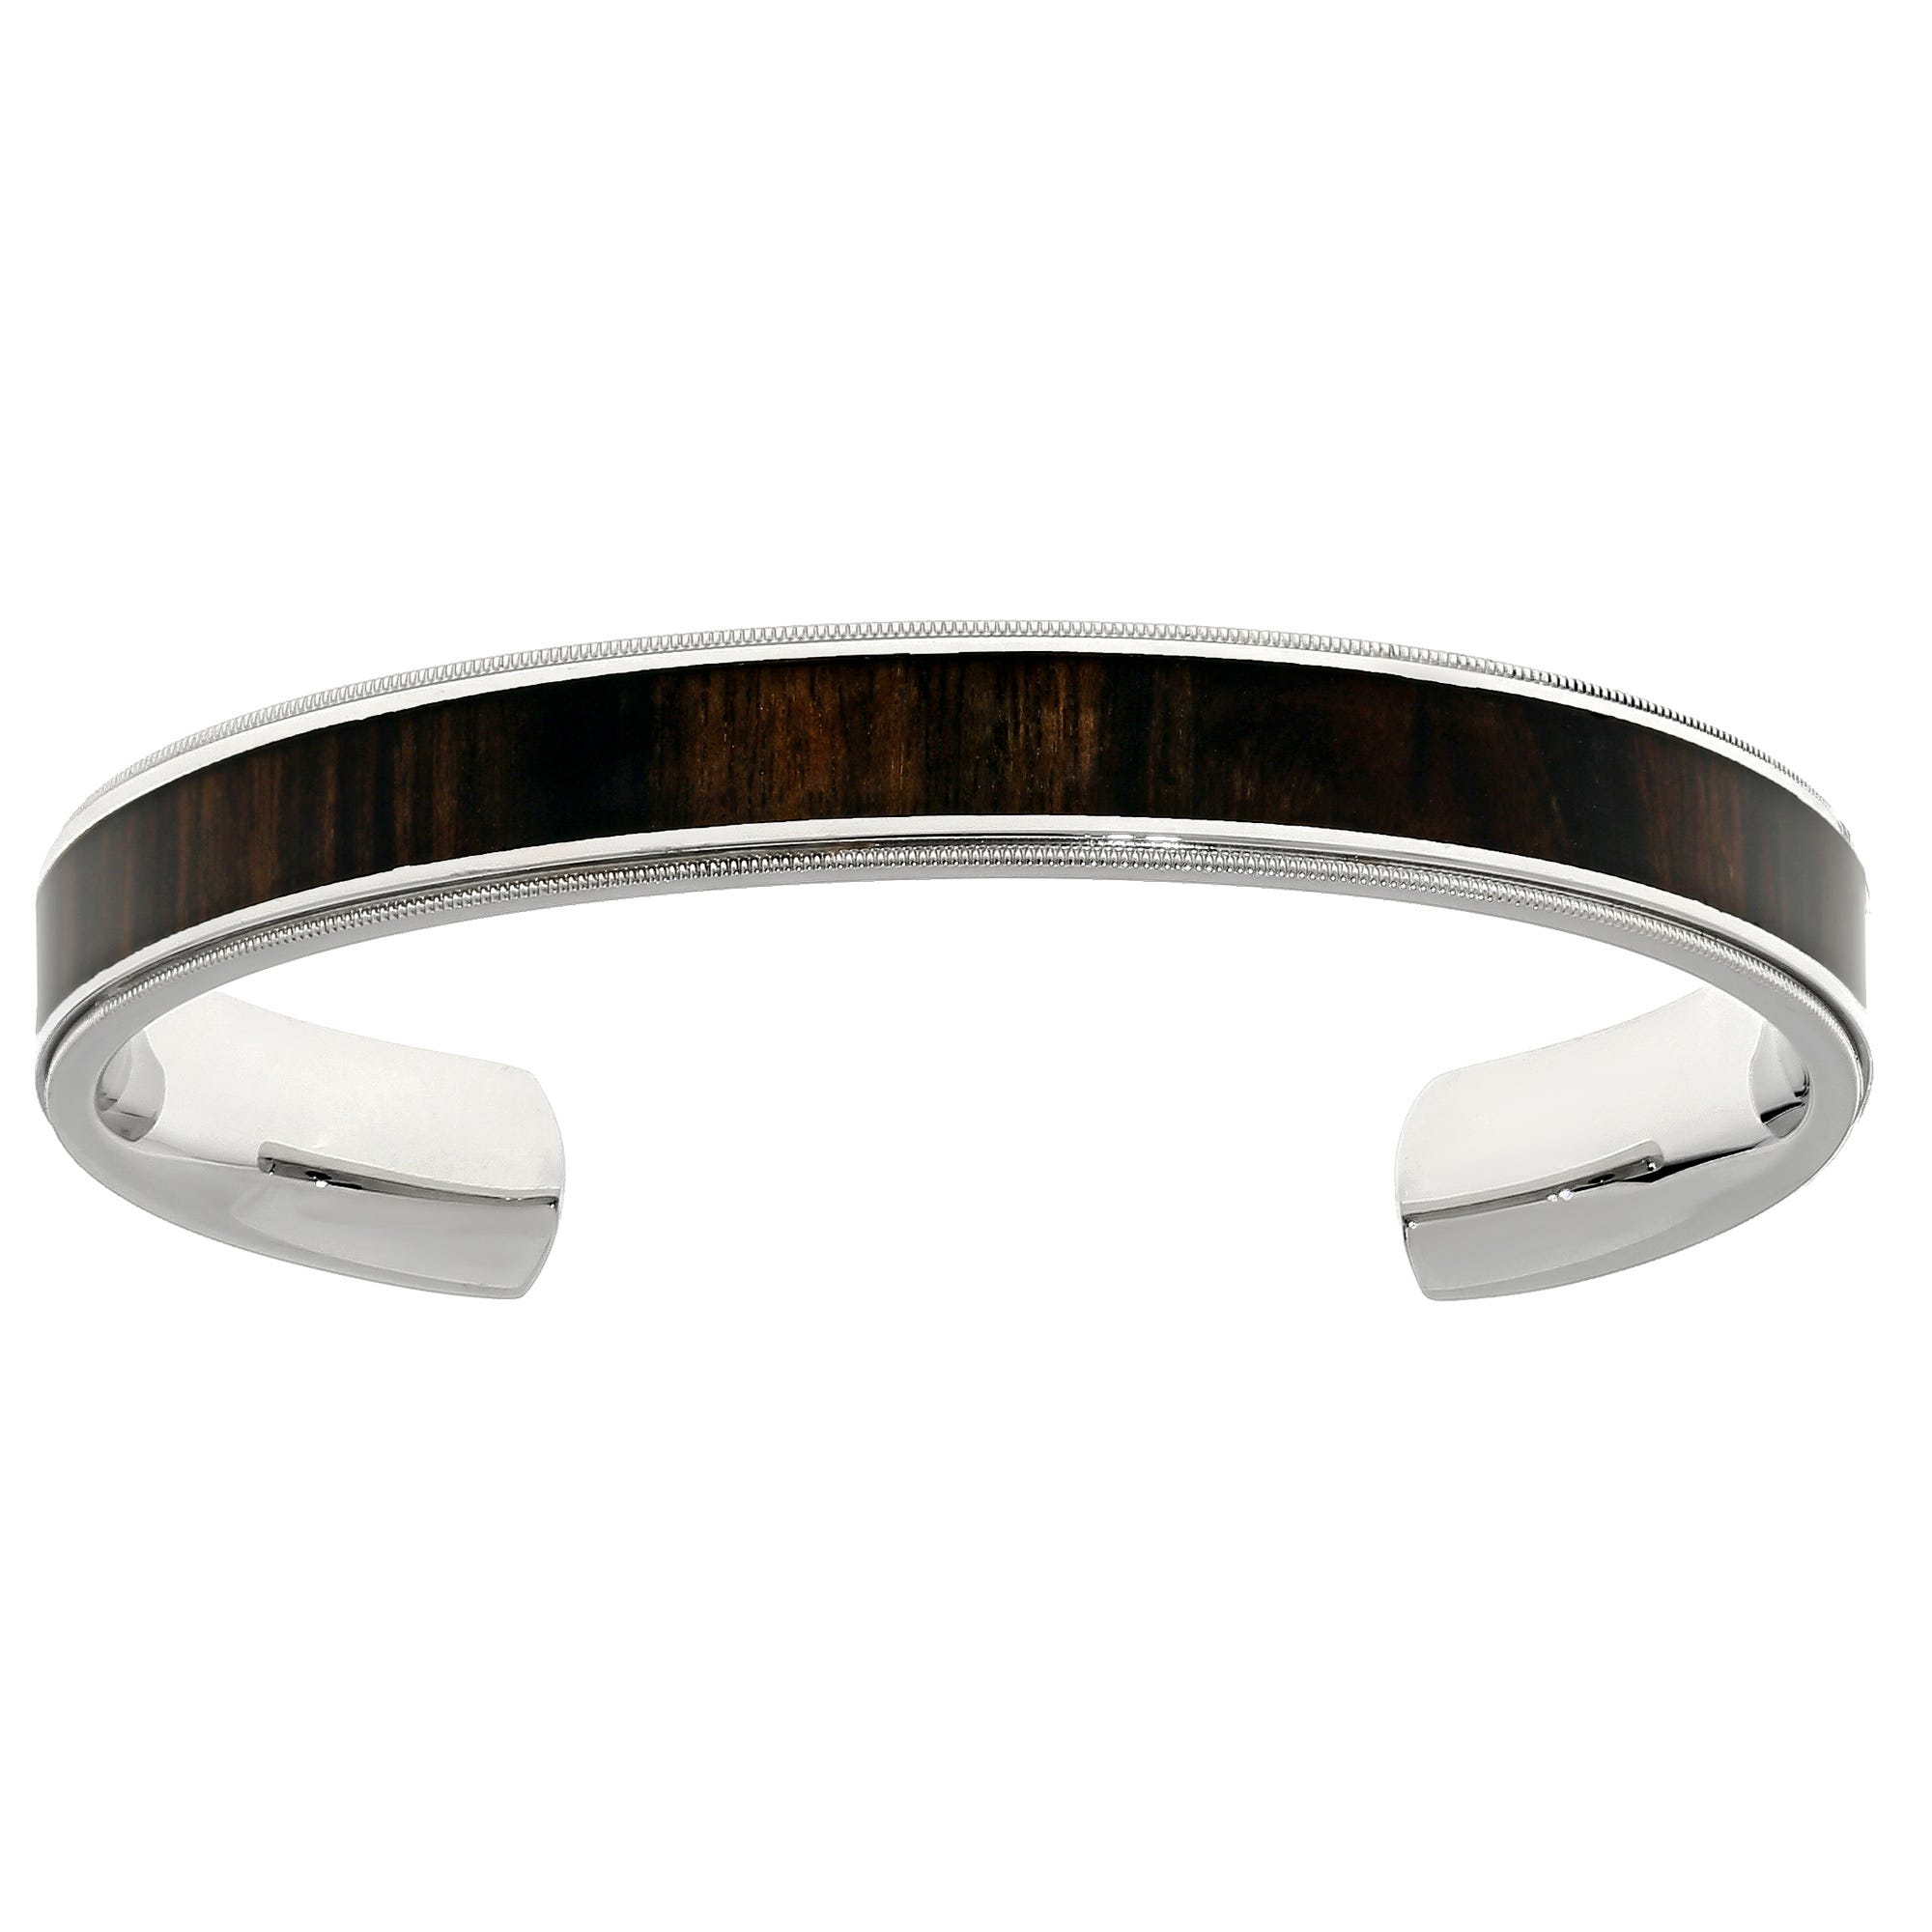 Men's Stainless Steel Wood Inlay Cuff